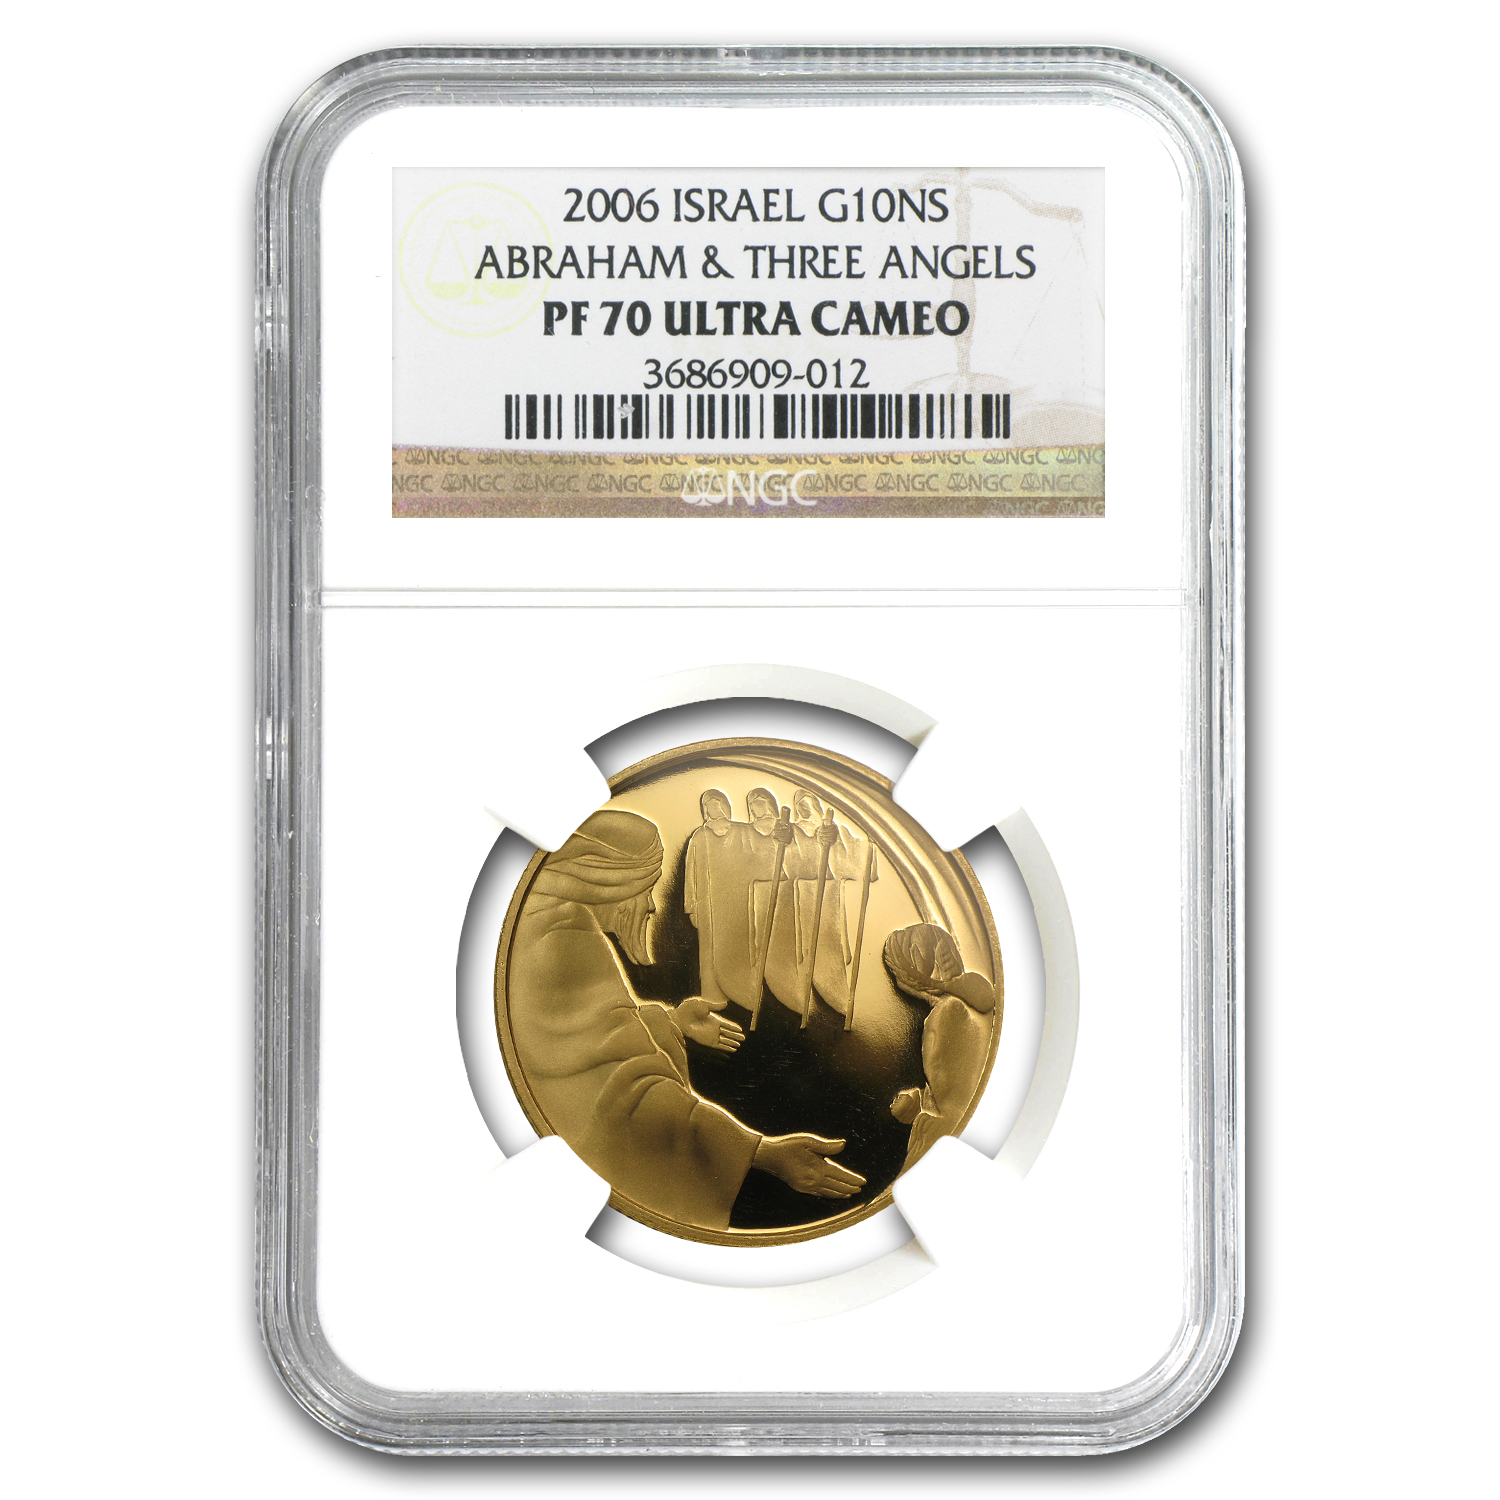 2006 Israel 1/2 oz Proof Gold Abraham and the Angels PF-70 NGC